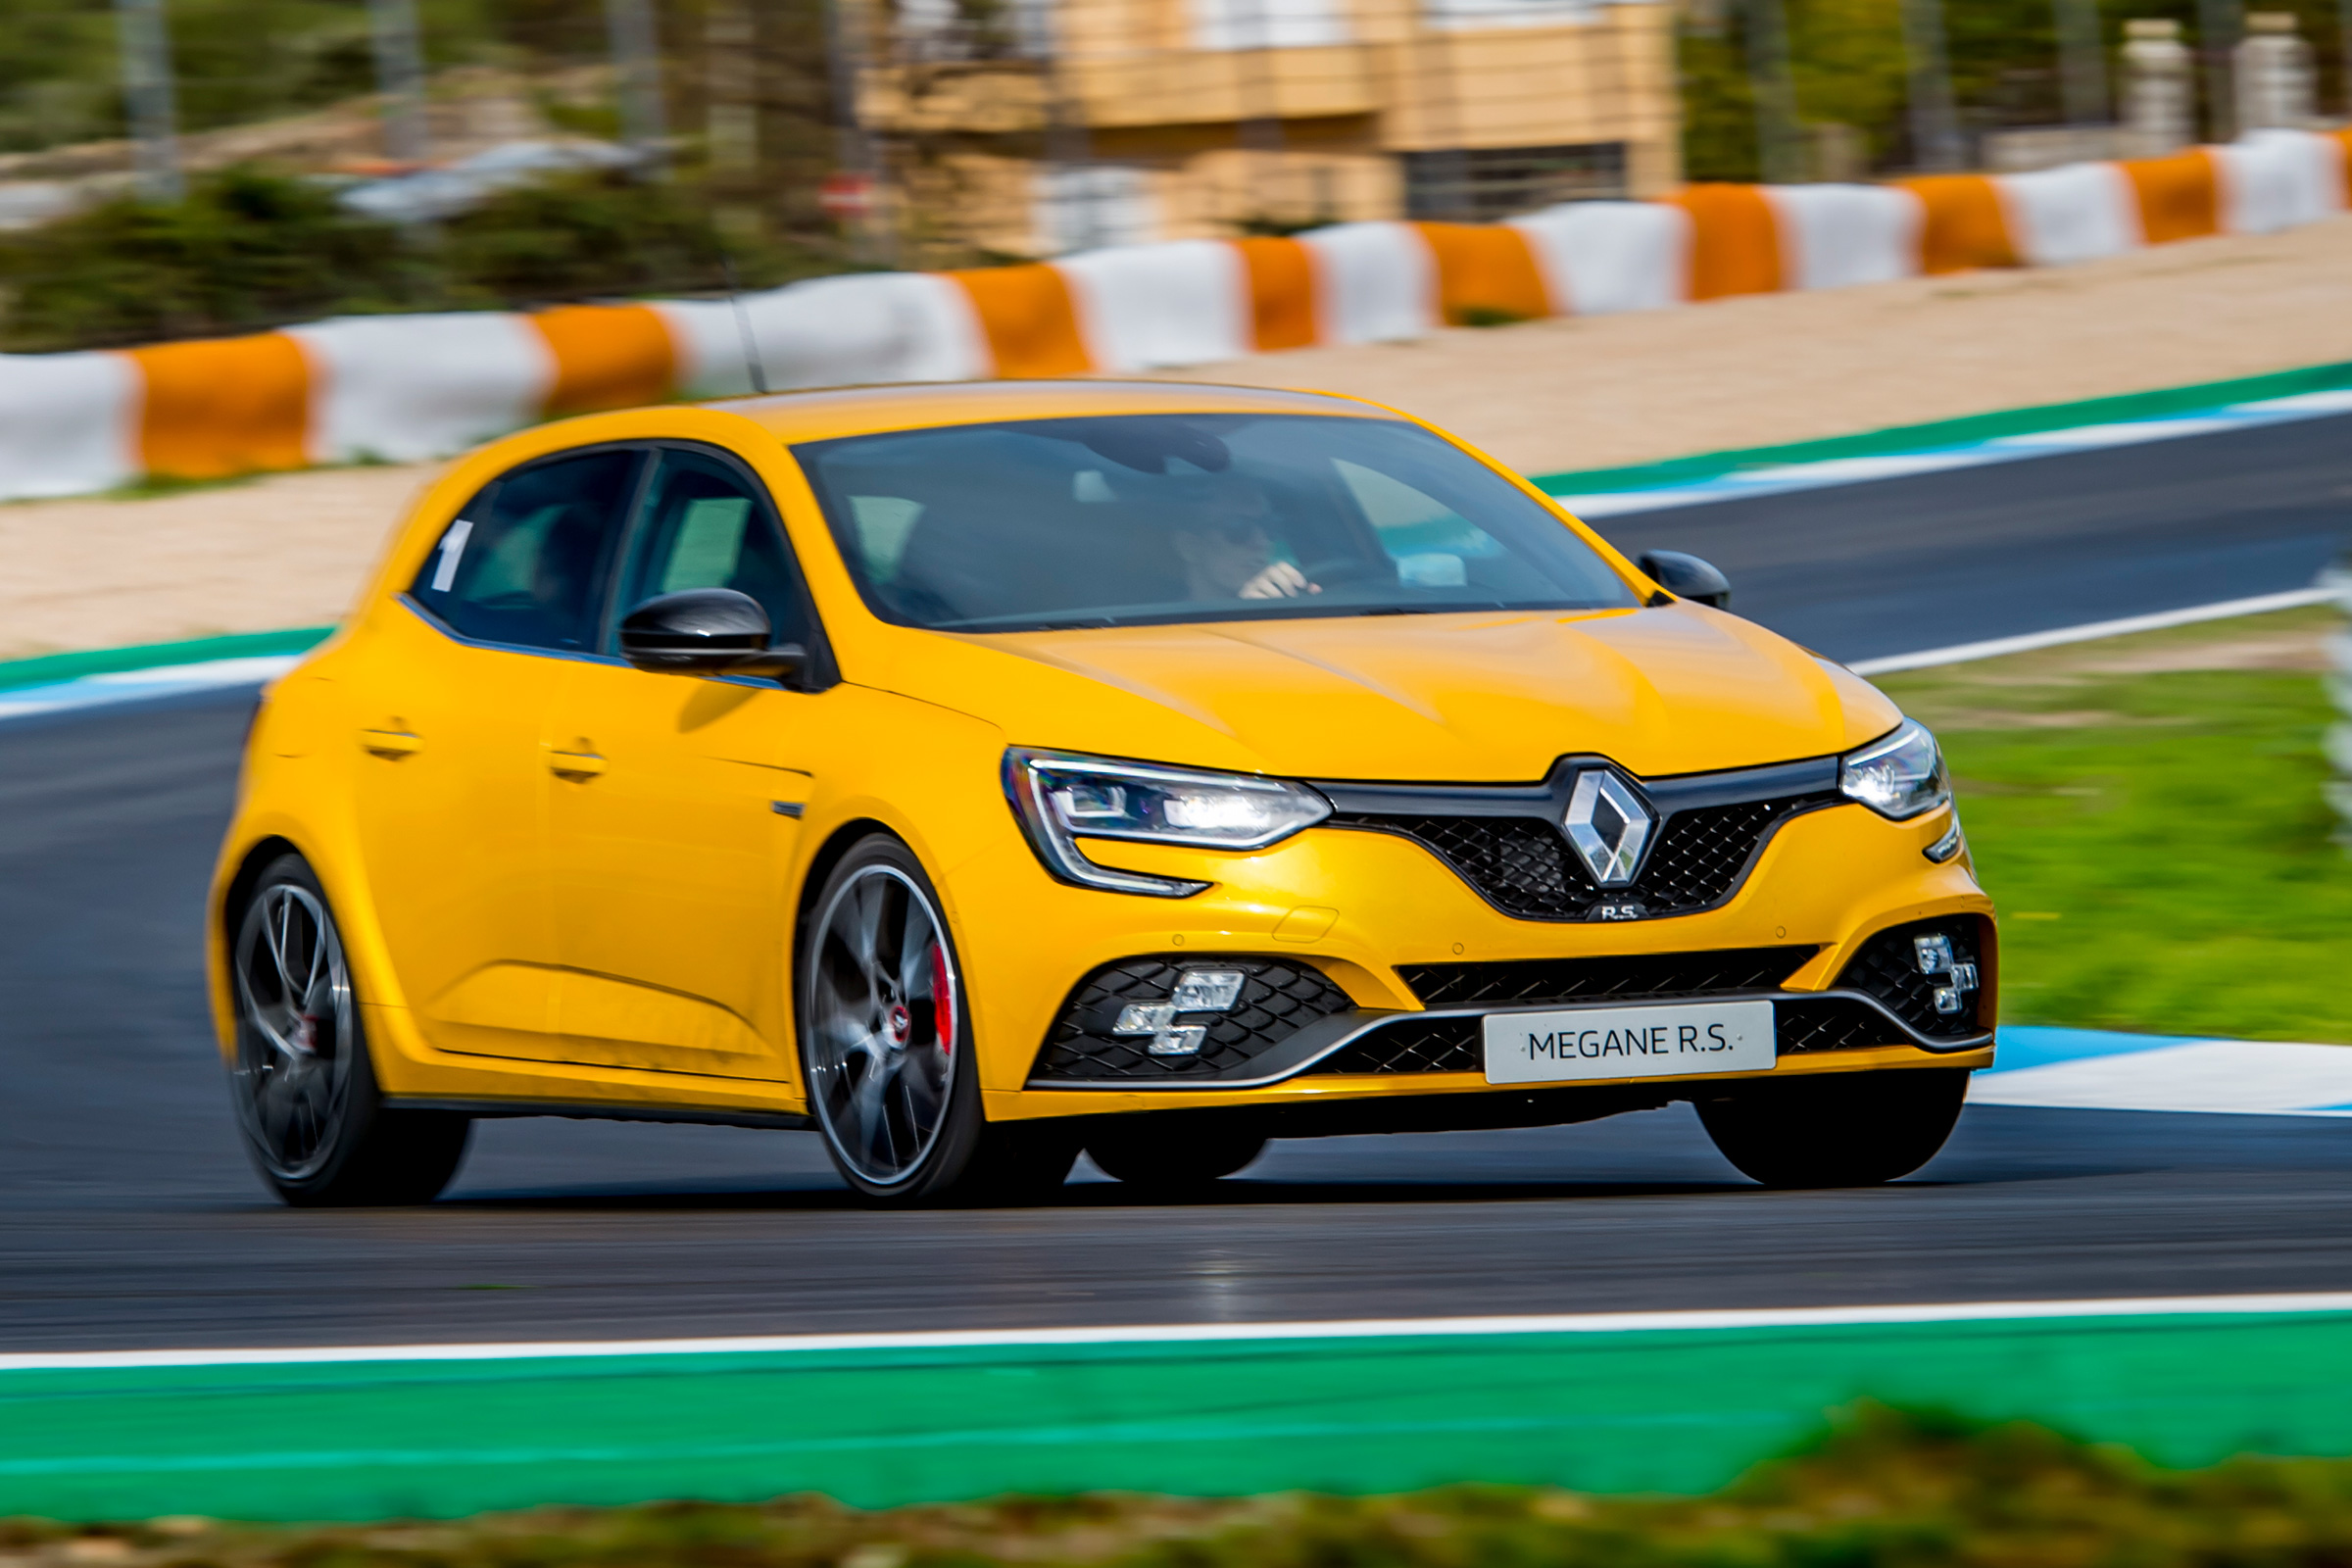 Renault Megane Rs Trophy 2020 Review Is This Renault Sport S Redemption Evo